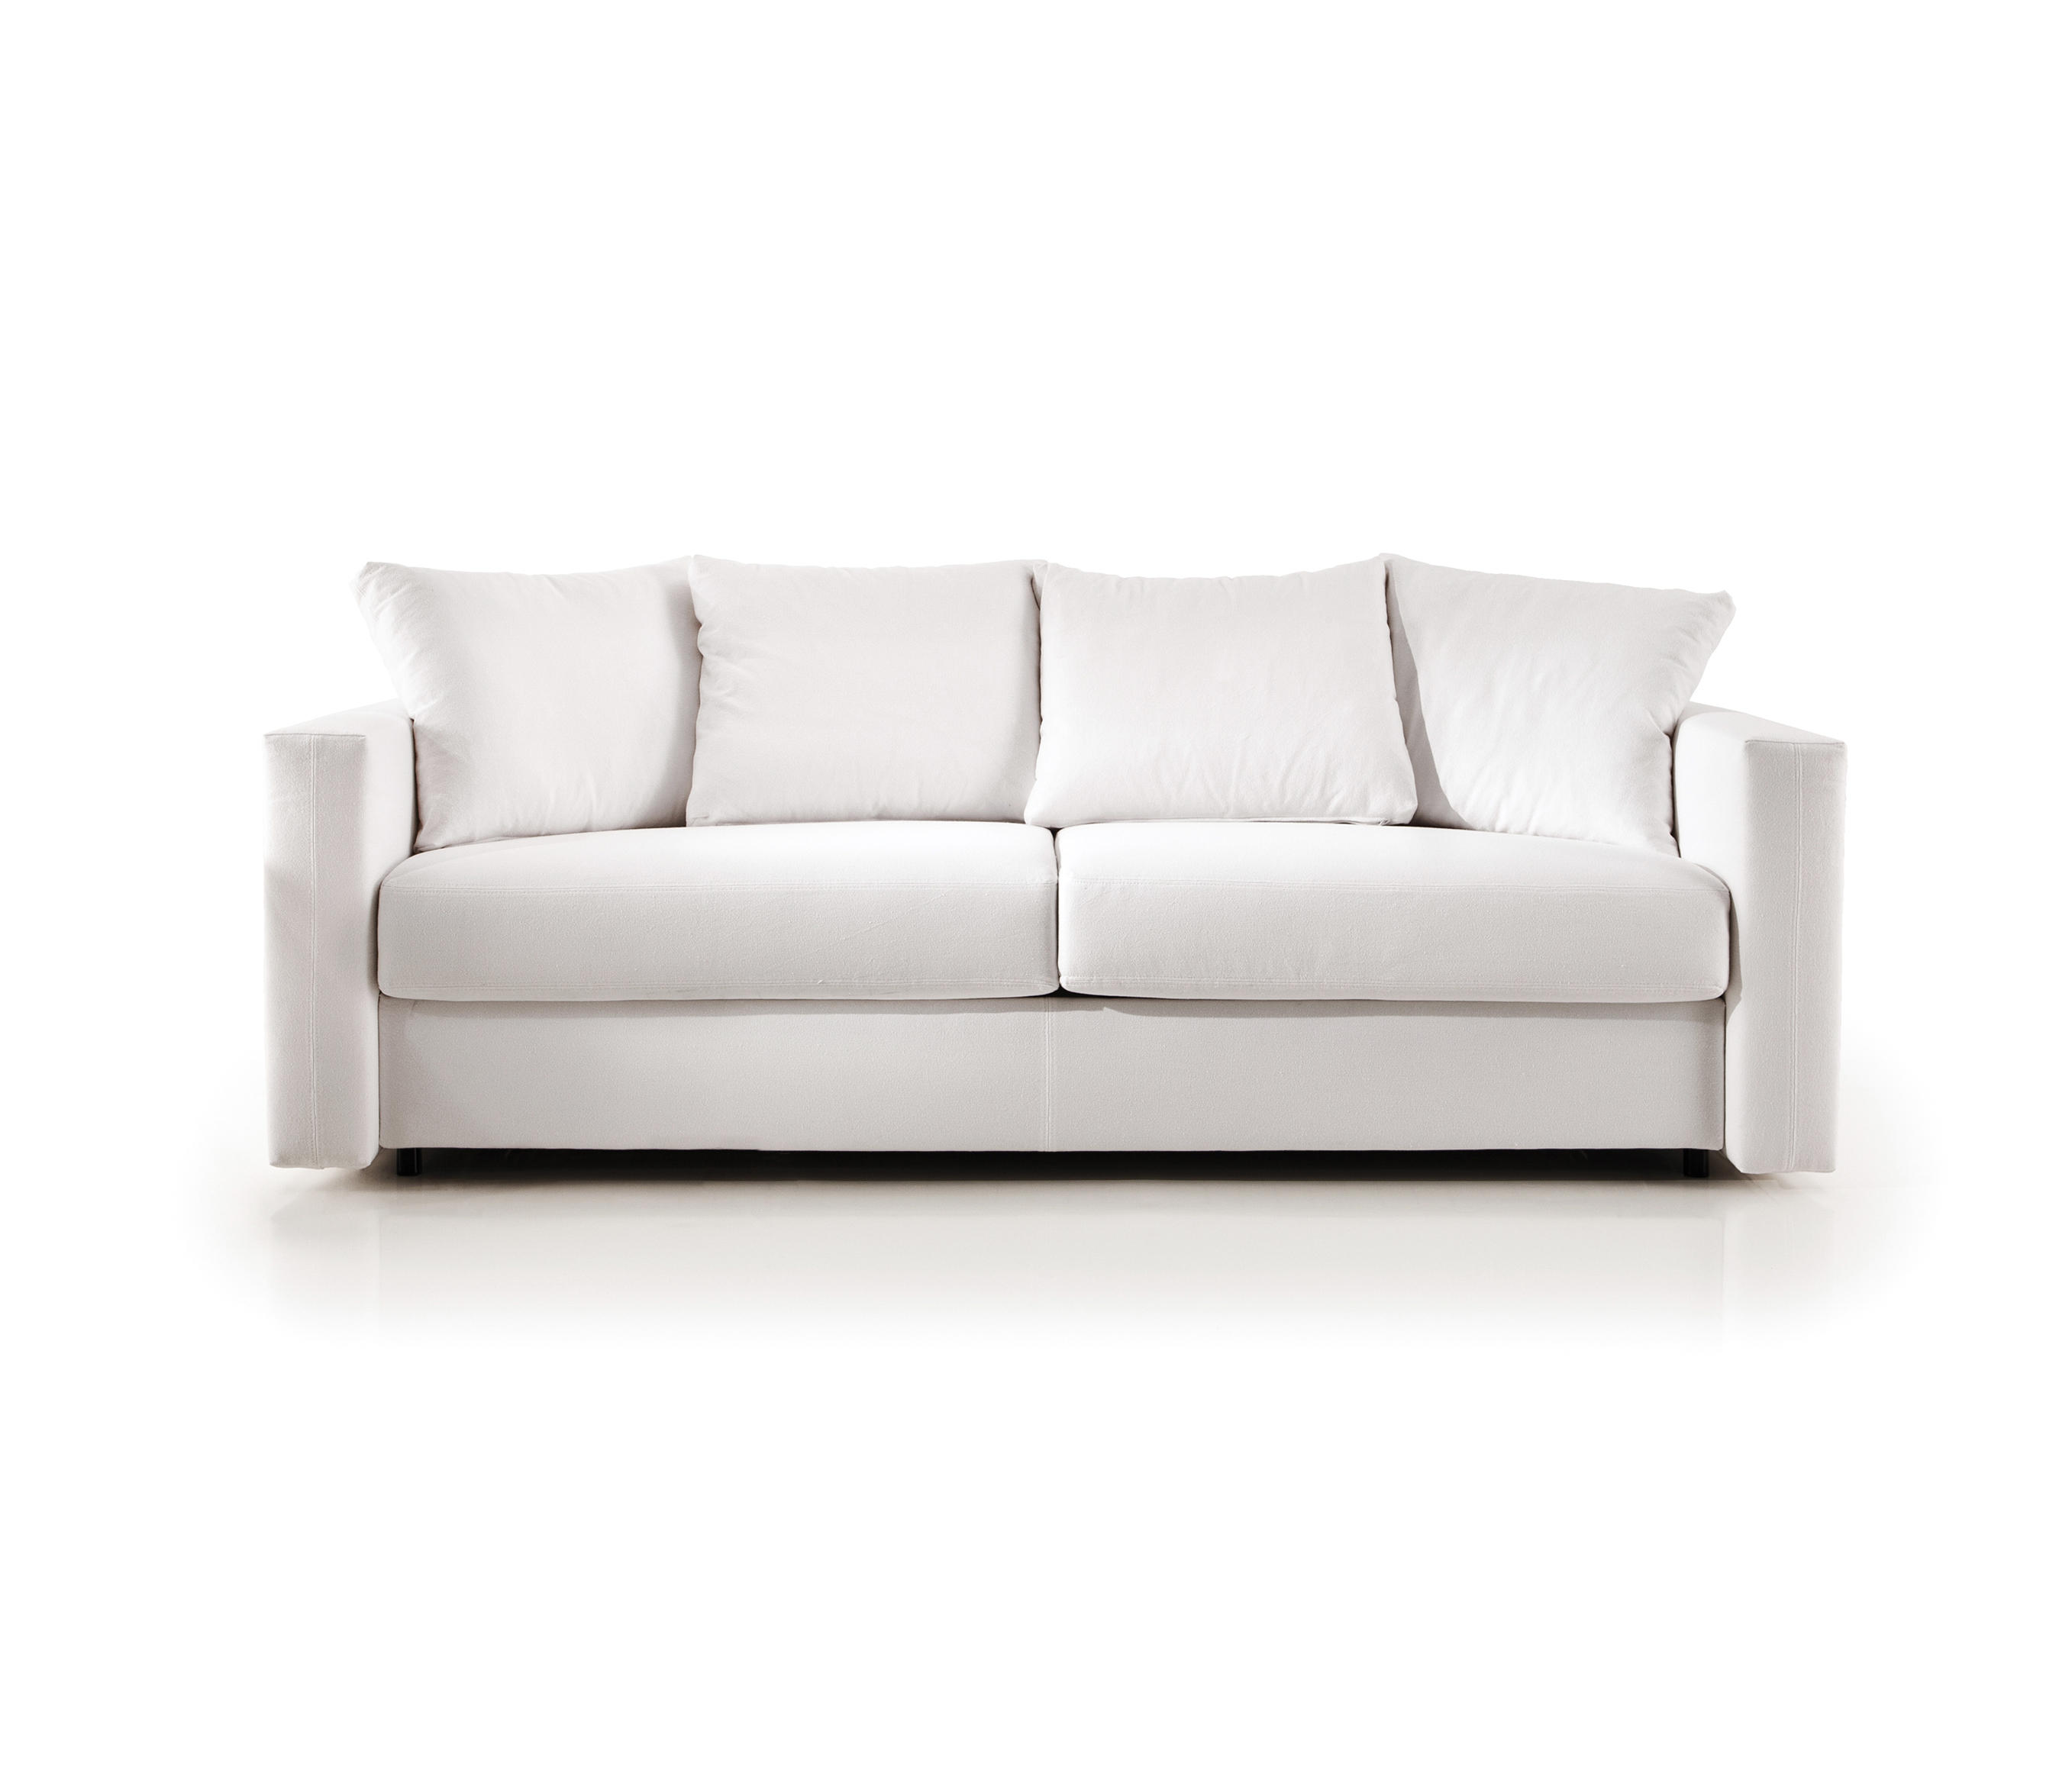 Trendy fulletto bedsofa by vibieffe sofa beds with naidei for Prostoria divani